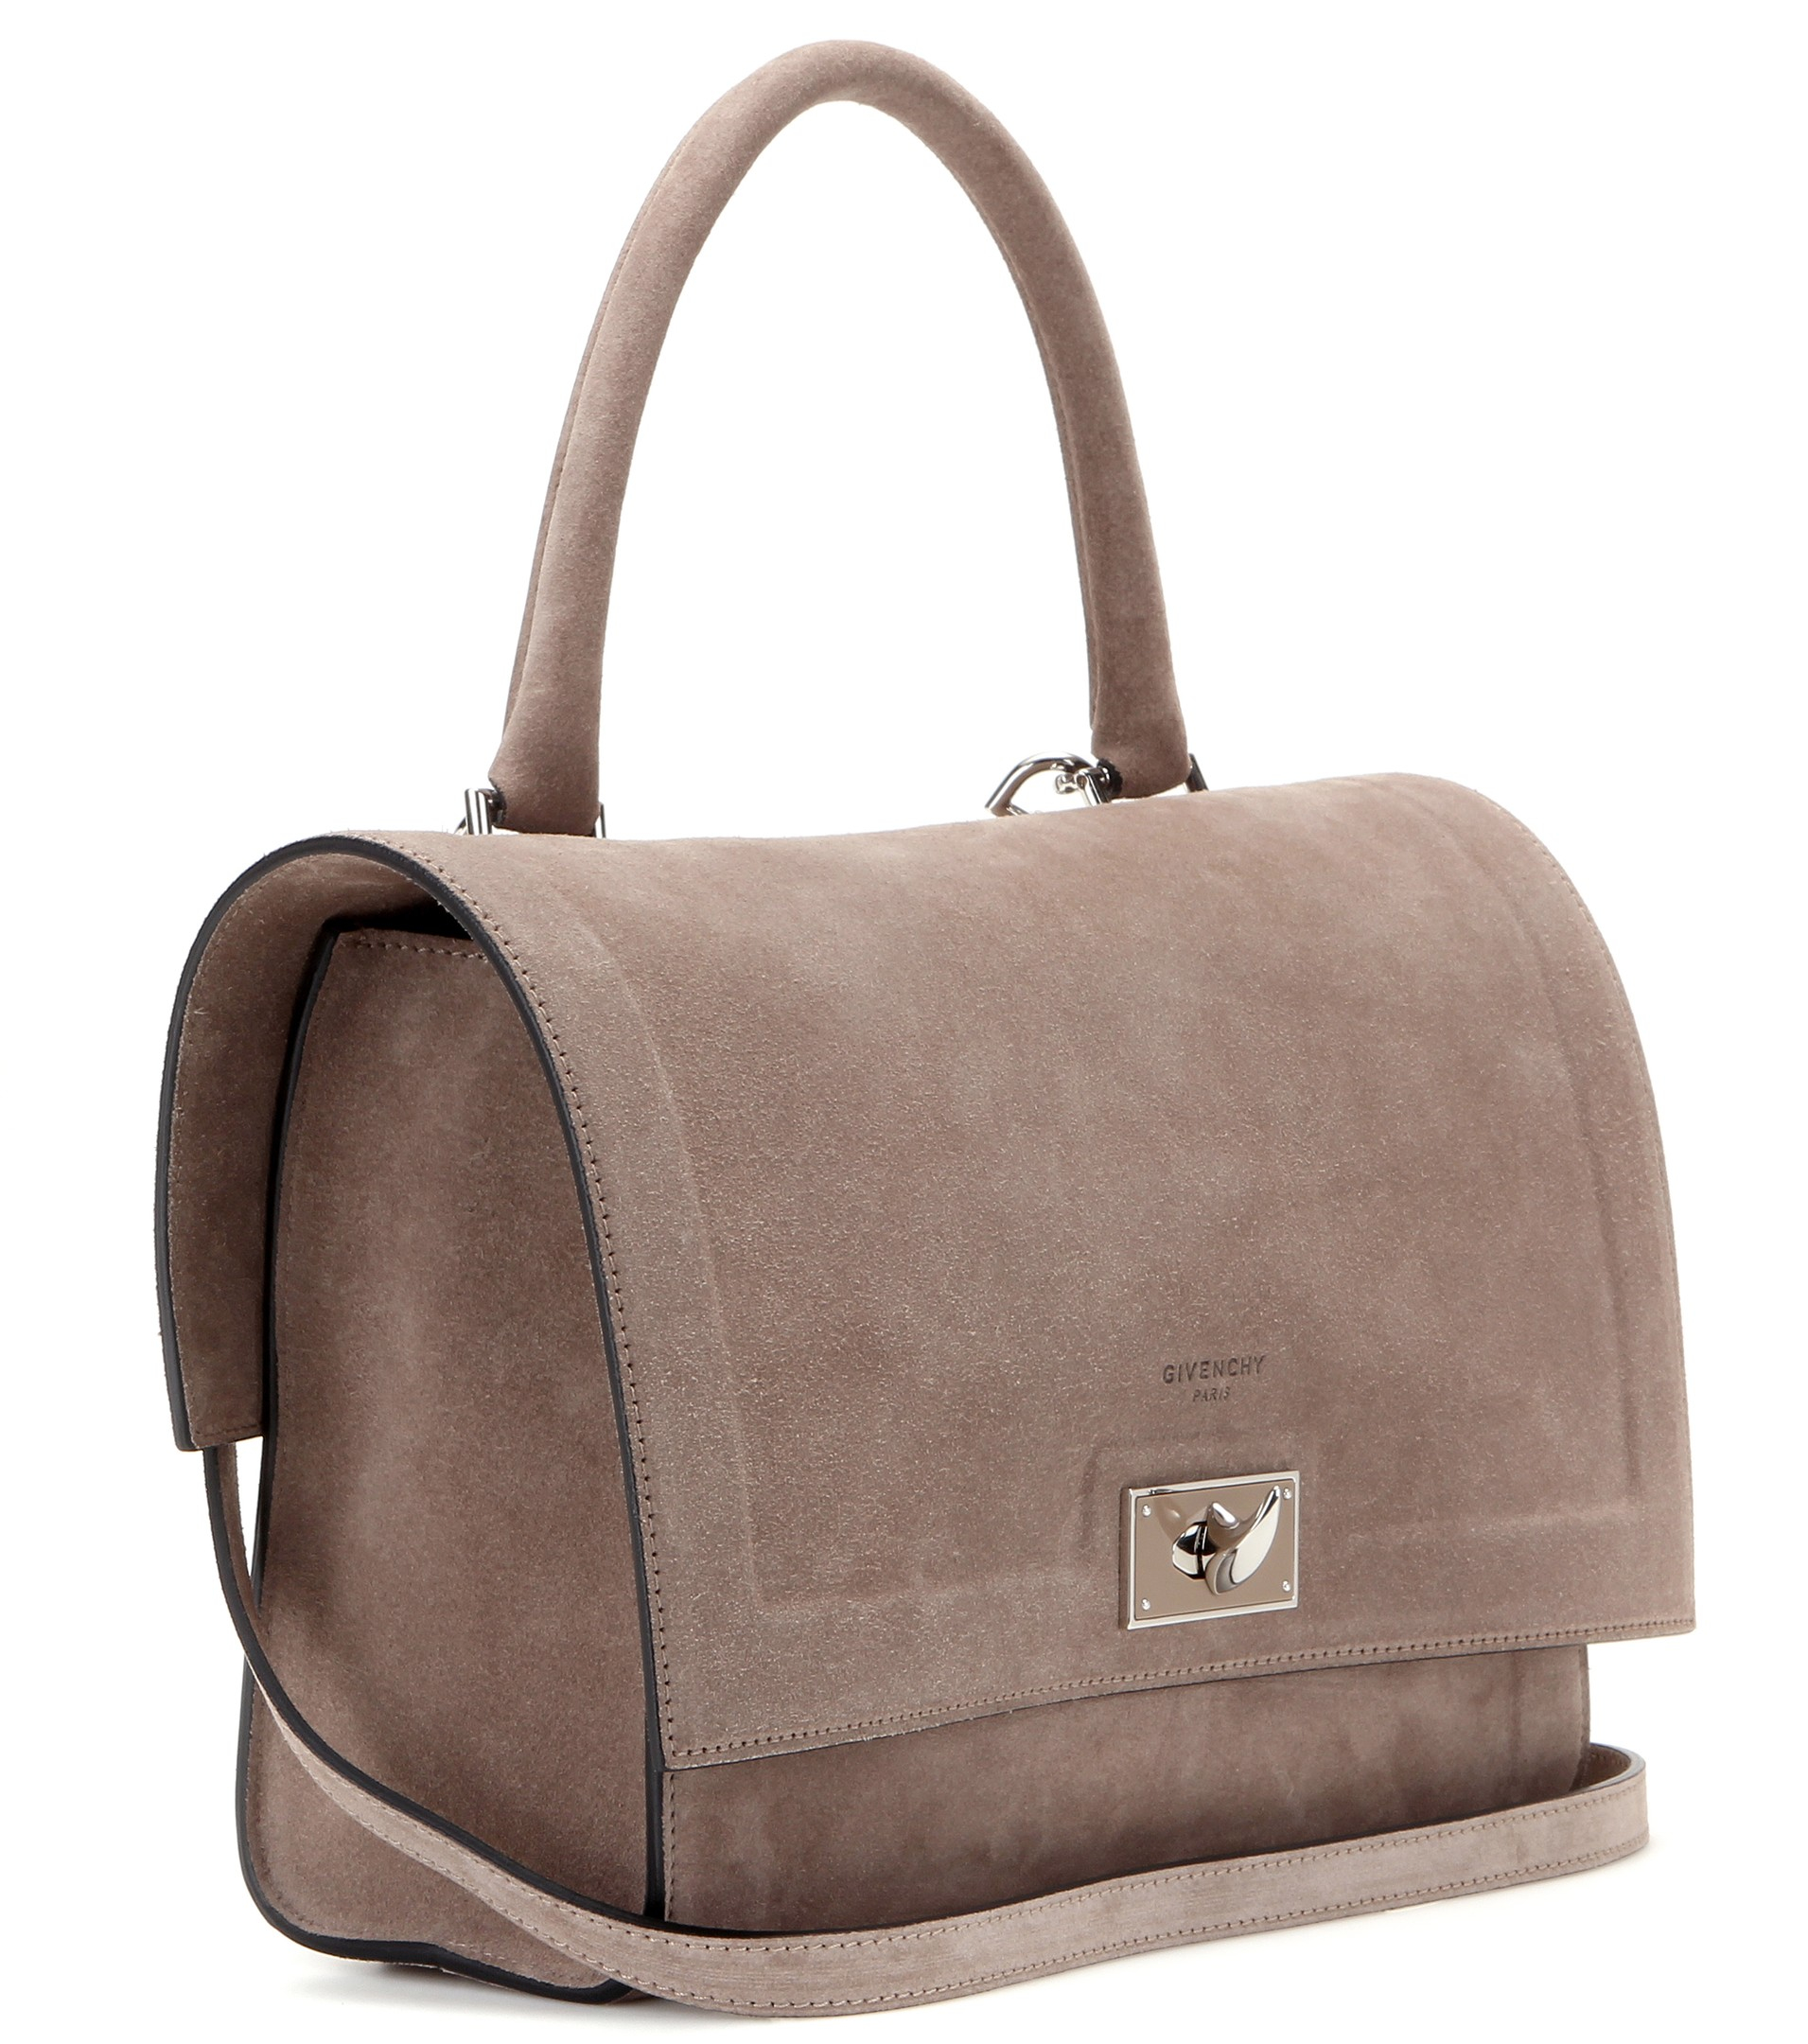 b171a6889a Lyst - Givenchy Shark Small Suede Shoulder Bag in Natural